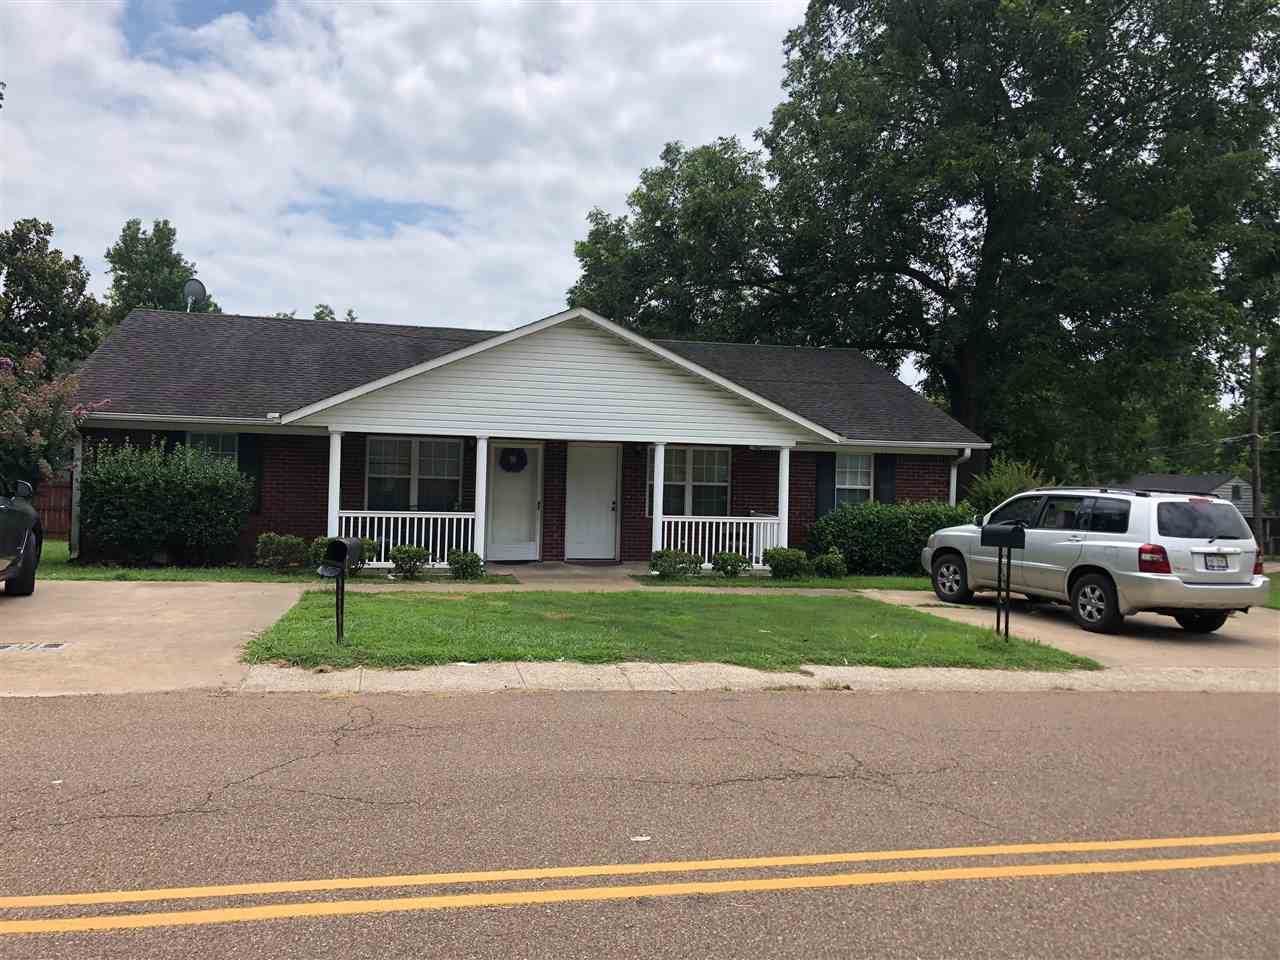 624 - 630 Margin Street,Brownsville,Tennessee 38012,Multi-family,624 - 630 Margin Street,184880